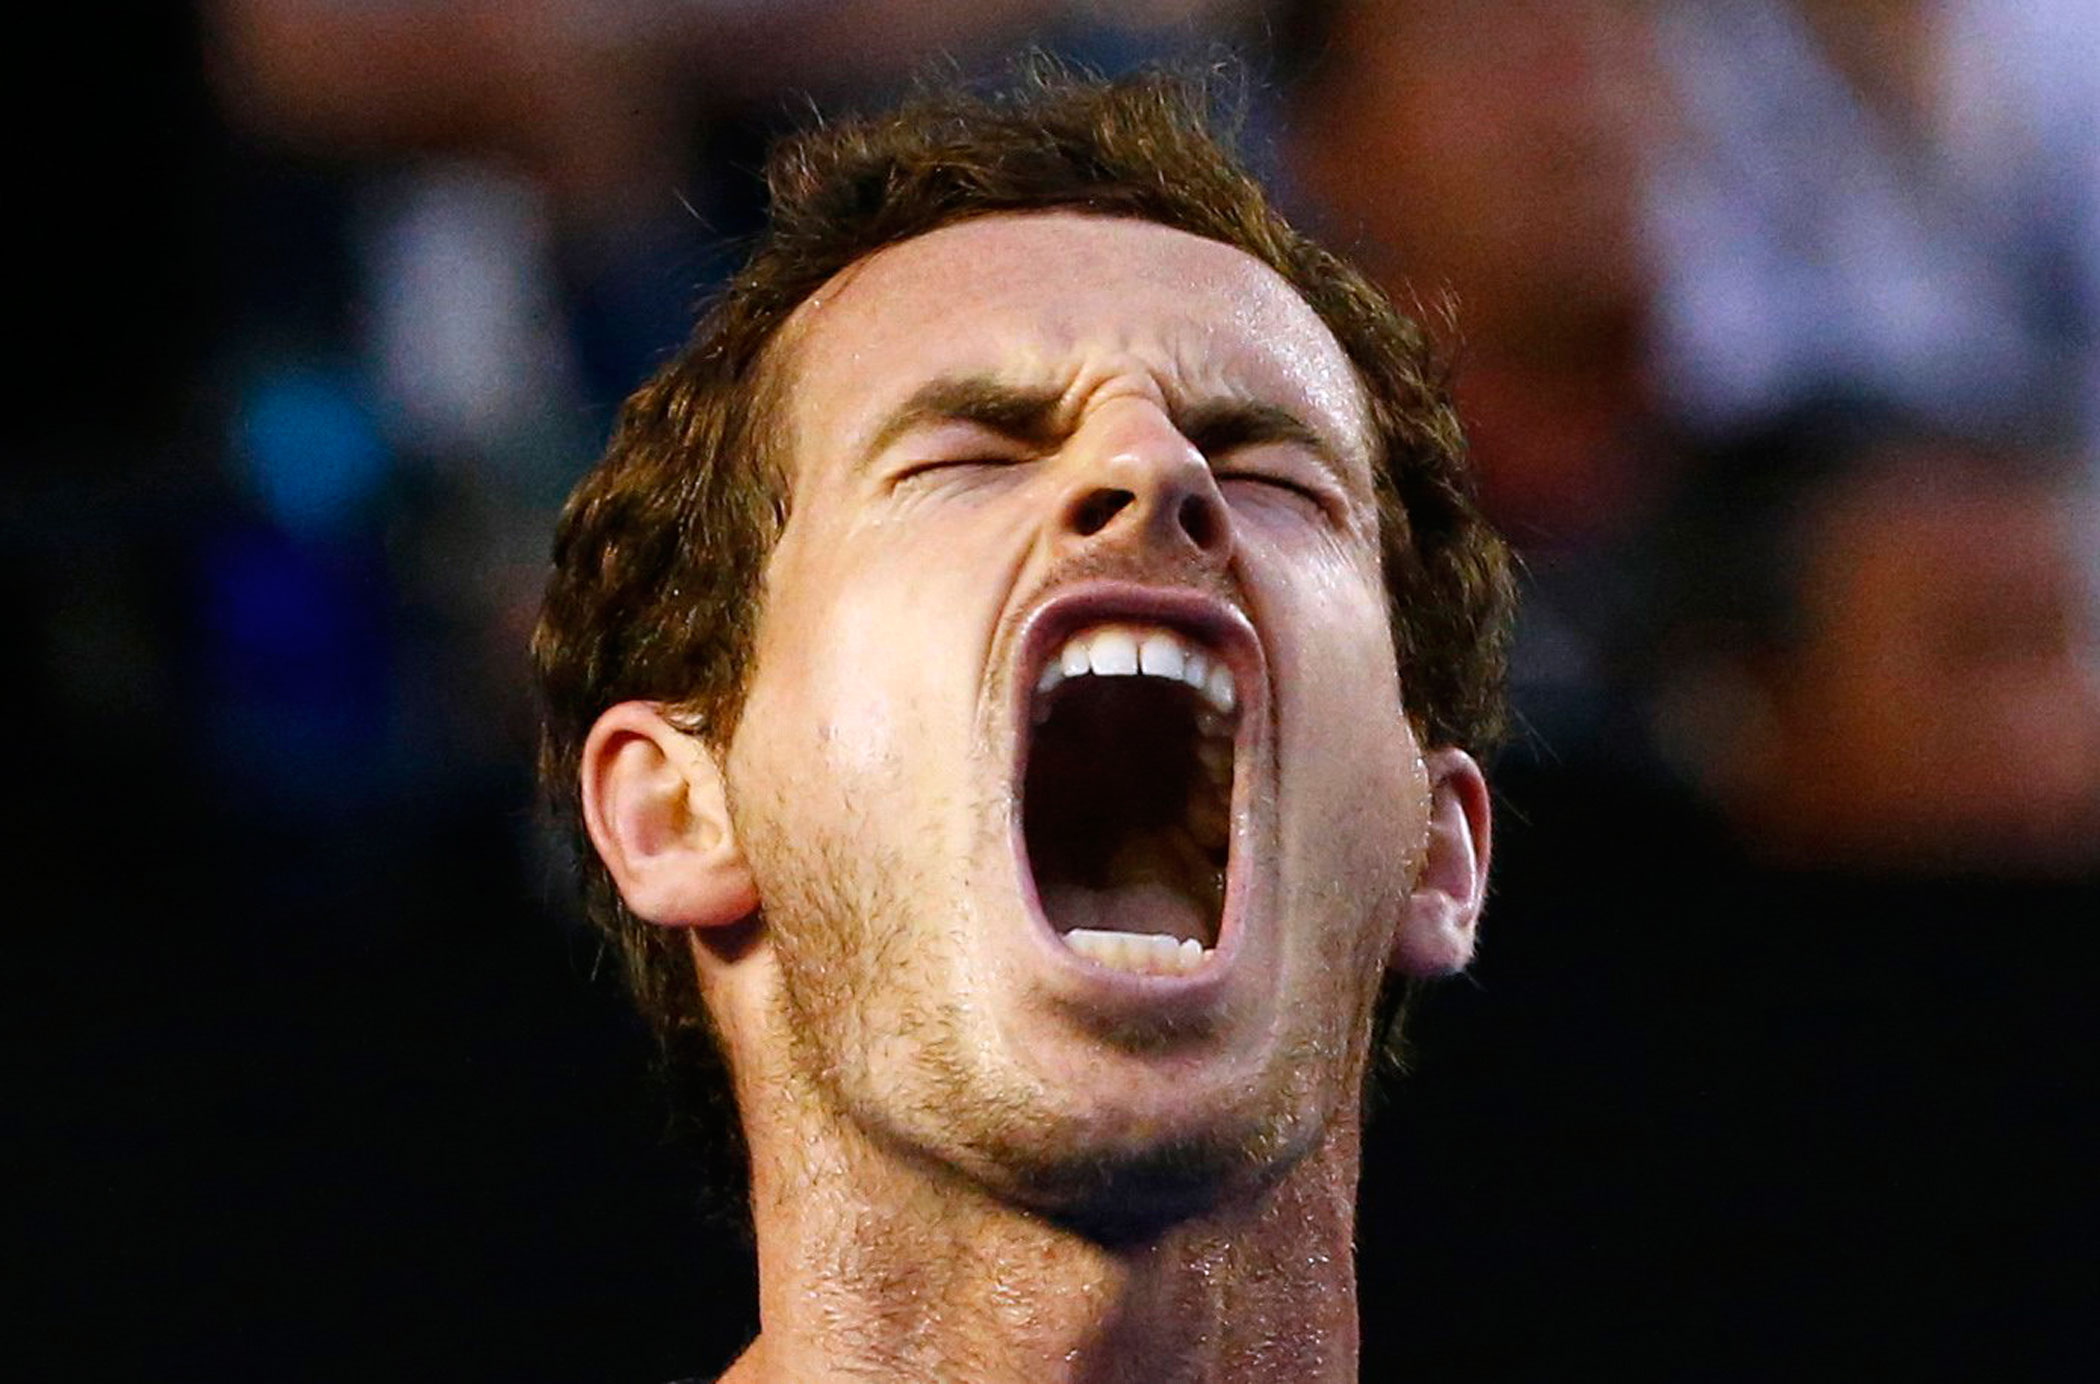 Britain's Andy Murray reacts during his fourth round match against Australia's Bernard Tomic at the Australian Open tennis tournament at Melbourne Park, Australia on Jan. 25, 2016.